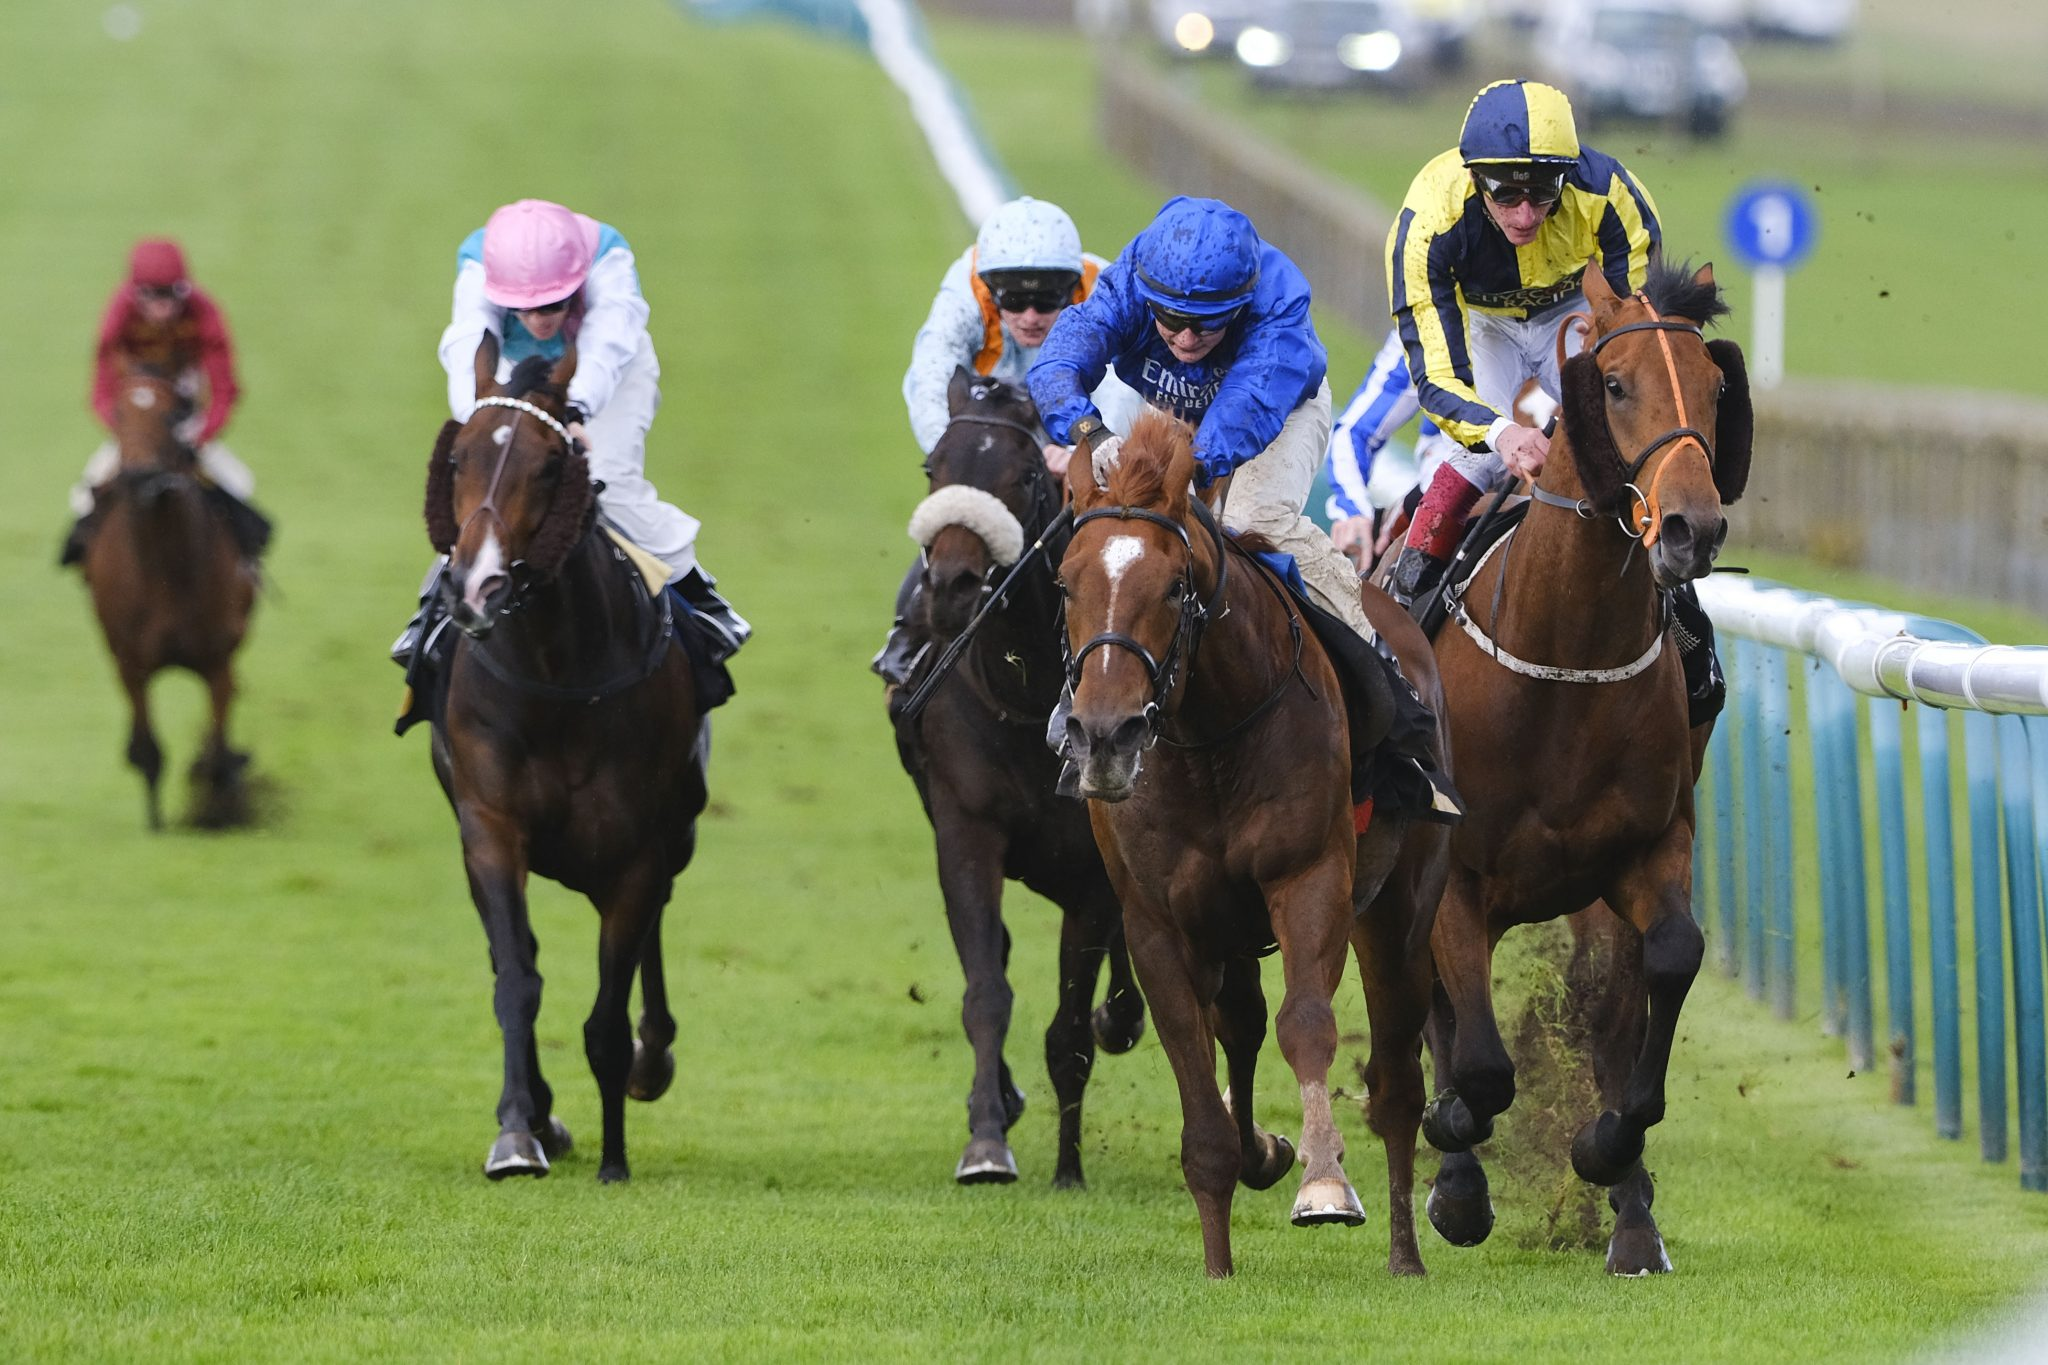 GODOLPHIN Wins in ARIONEO NURSERY HANDICAP